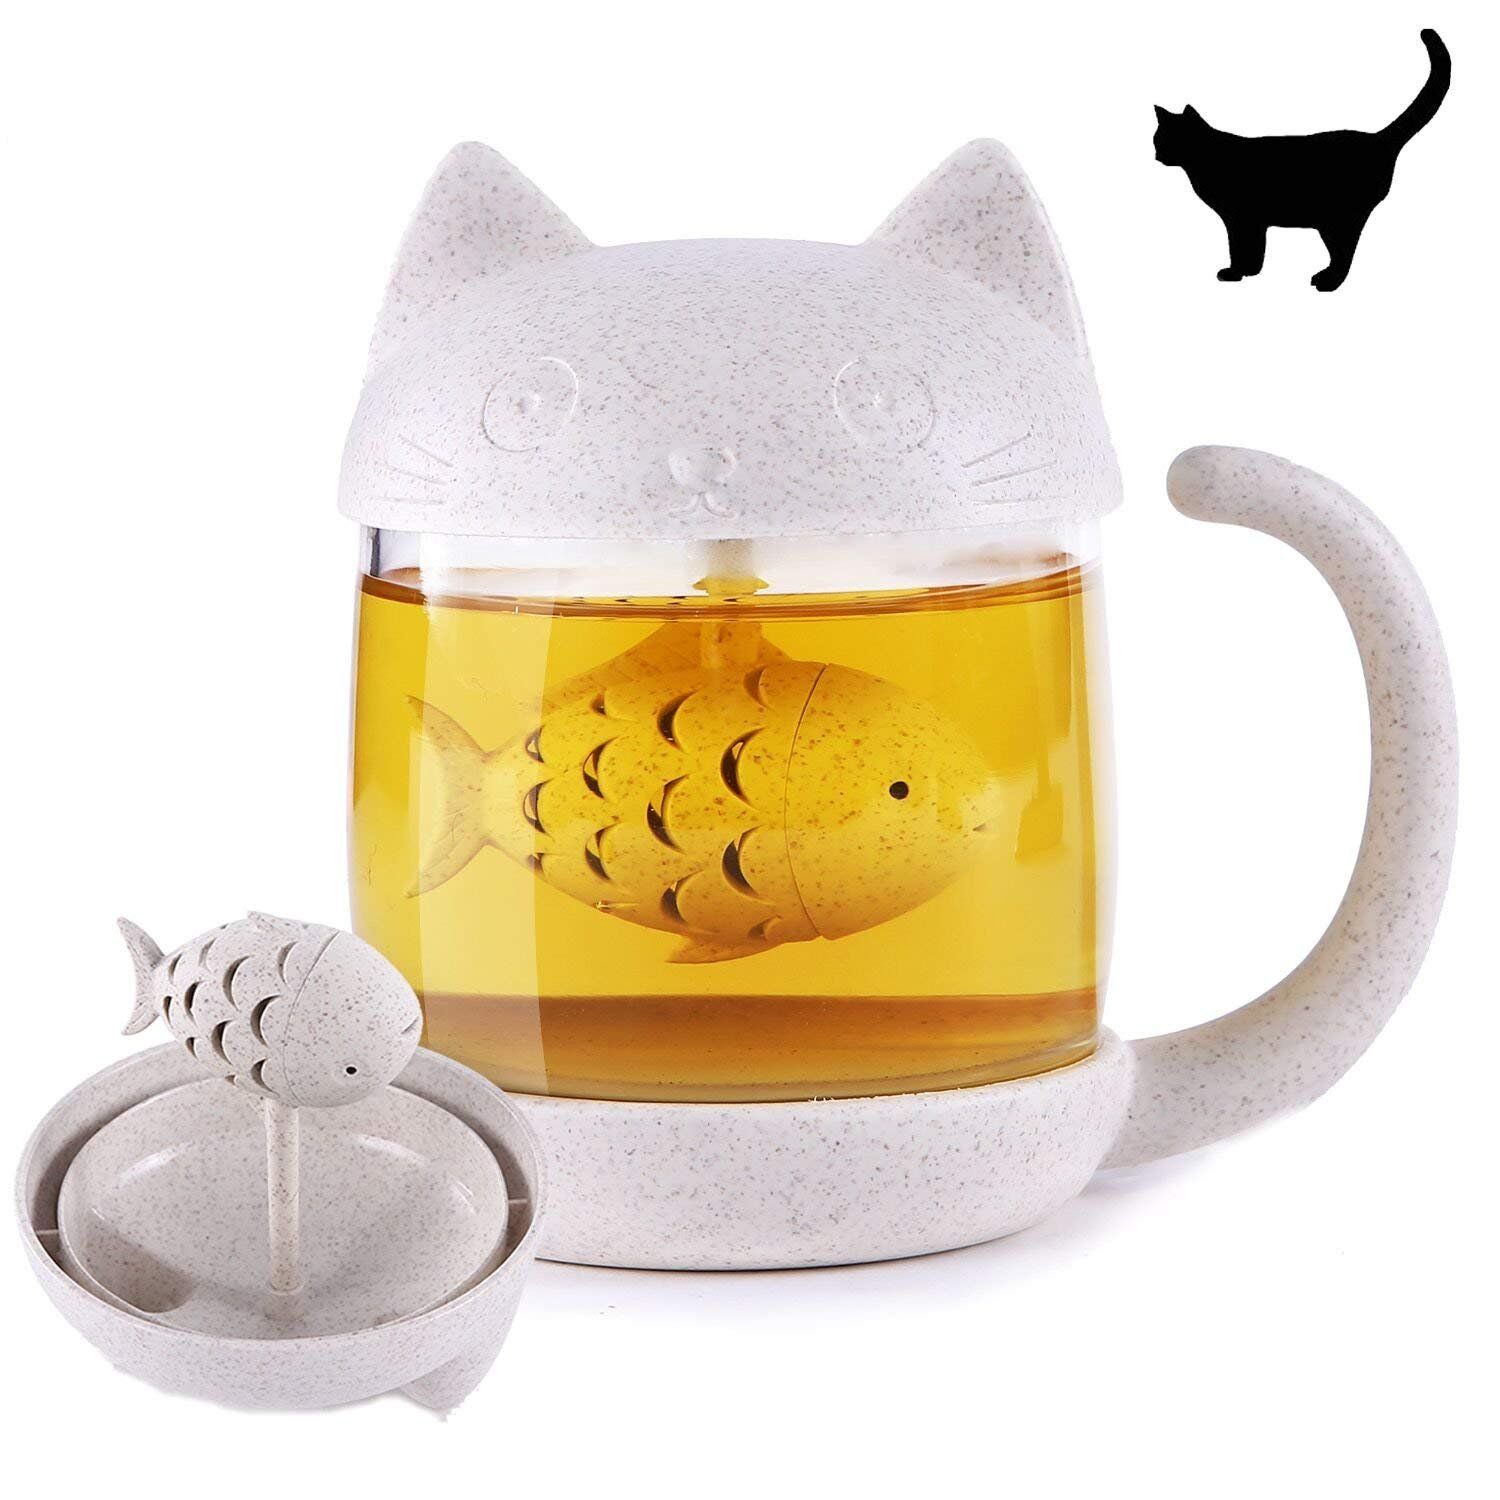 NZQXJXZ Cute Cat Tail Tea Cup with Detachable Fish Infuser Filter, Glass Teacup, Cats Tail Coffee Mug Tea Lovely Cup for Children Girl